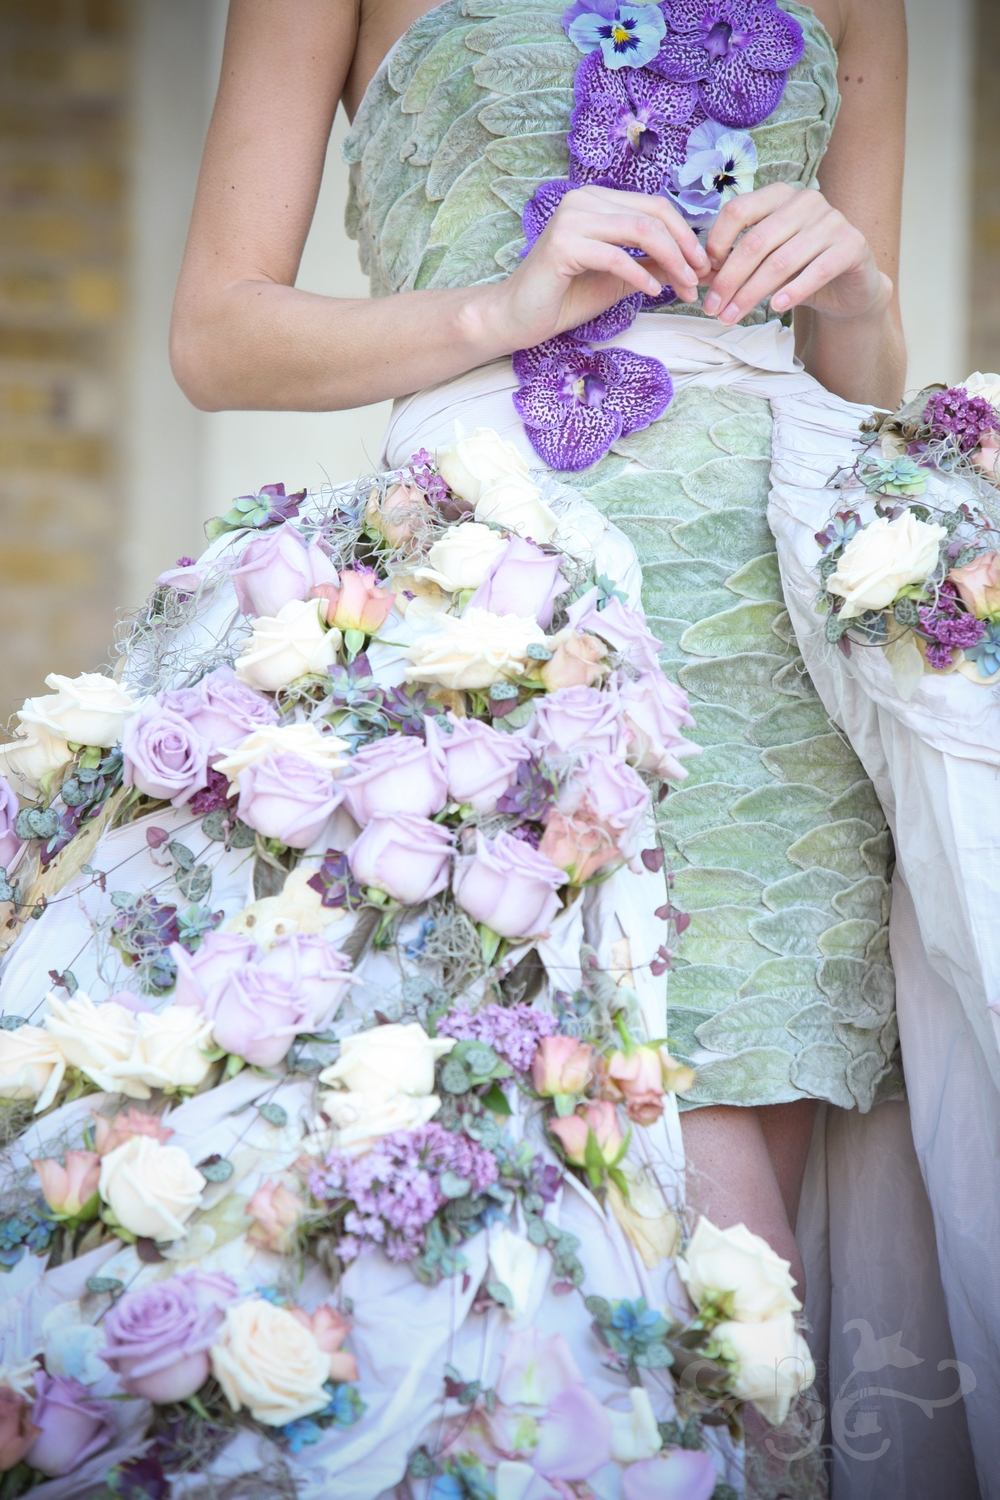 Floral Wedding Dress - May 2010 028.jpg